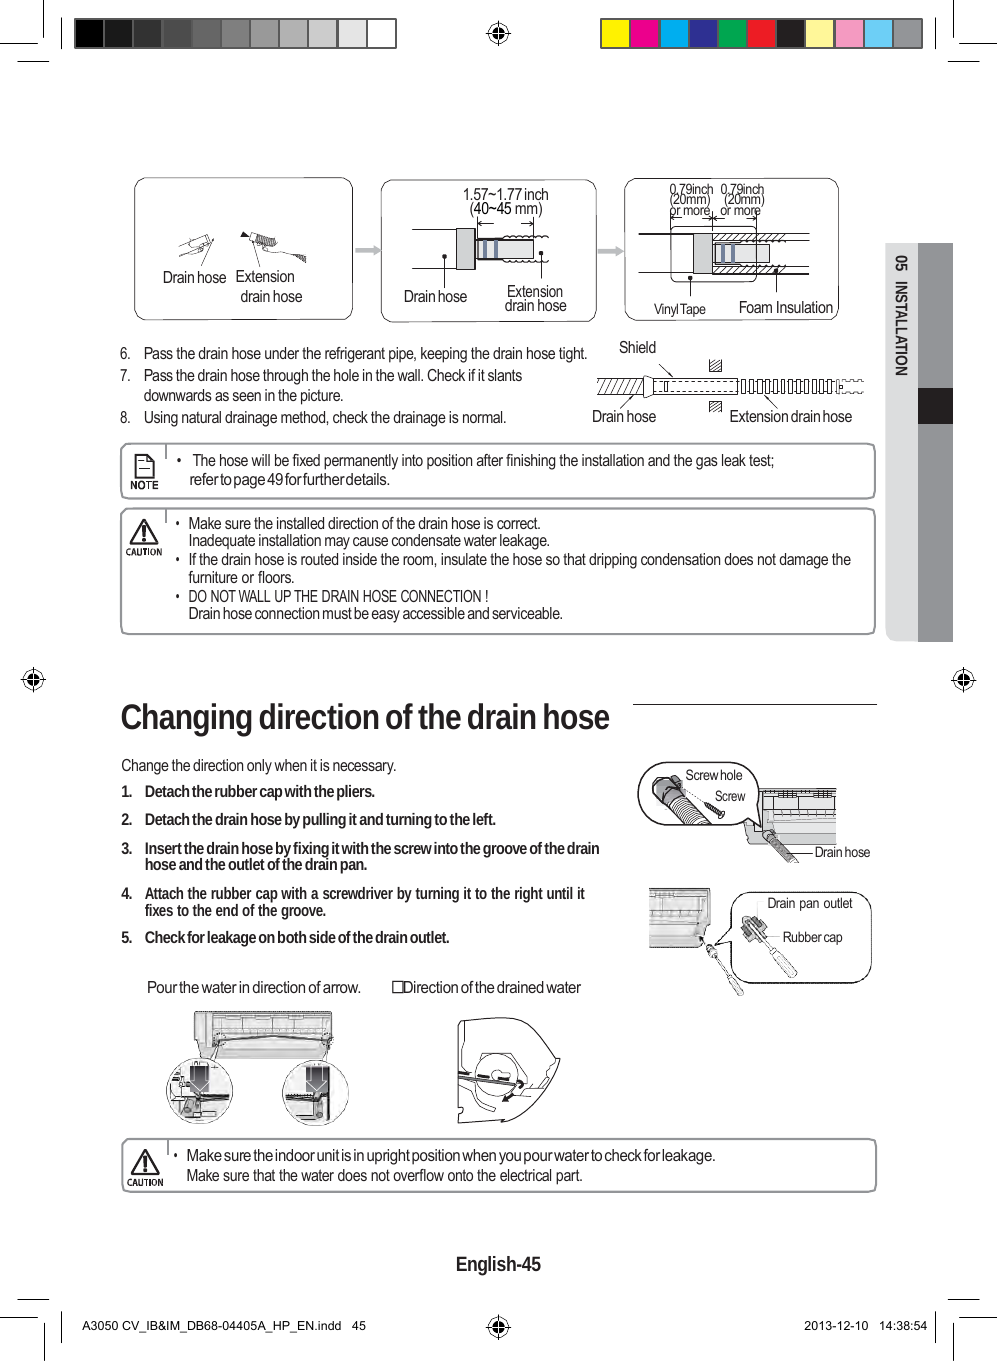 samsung ducted air conditioner user manual pdf